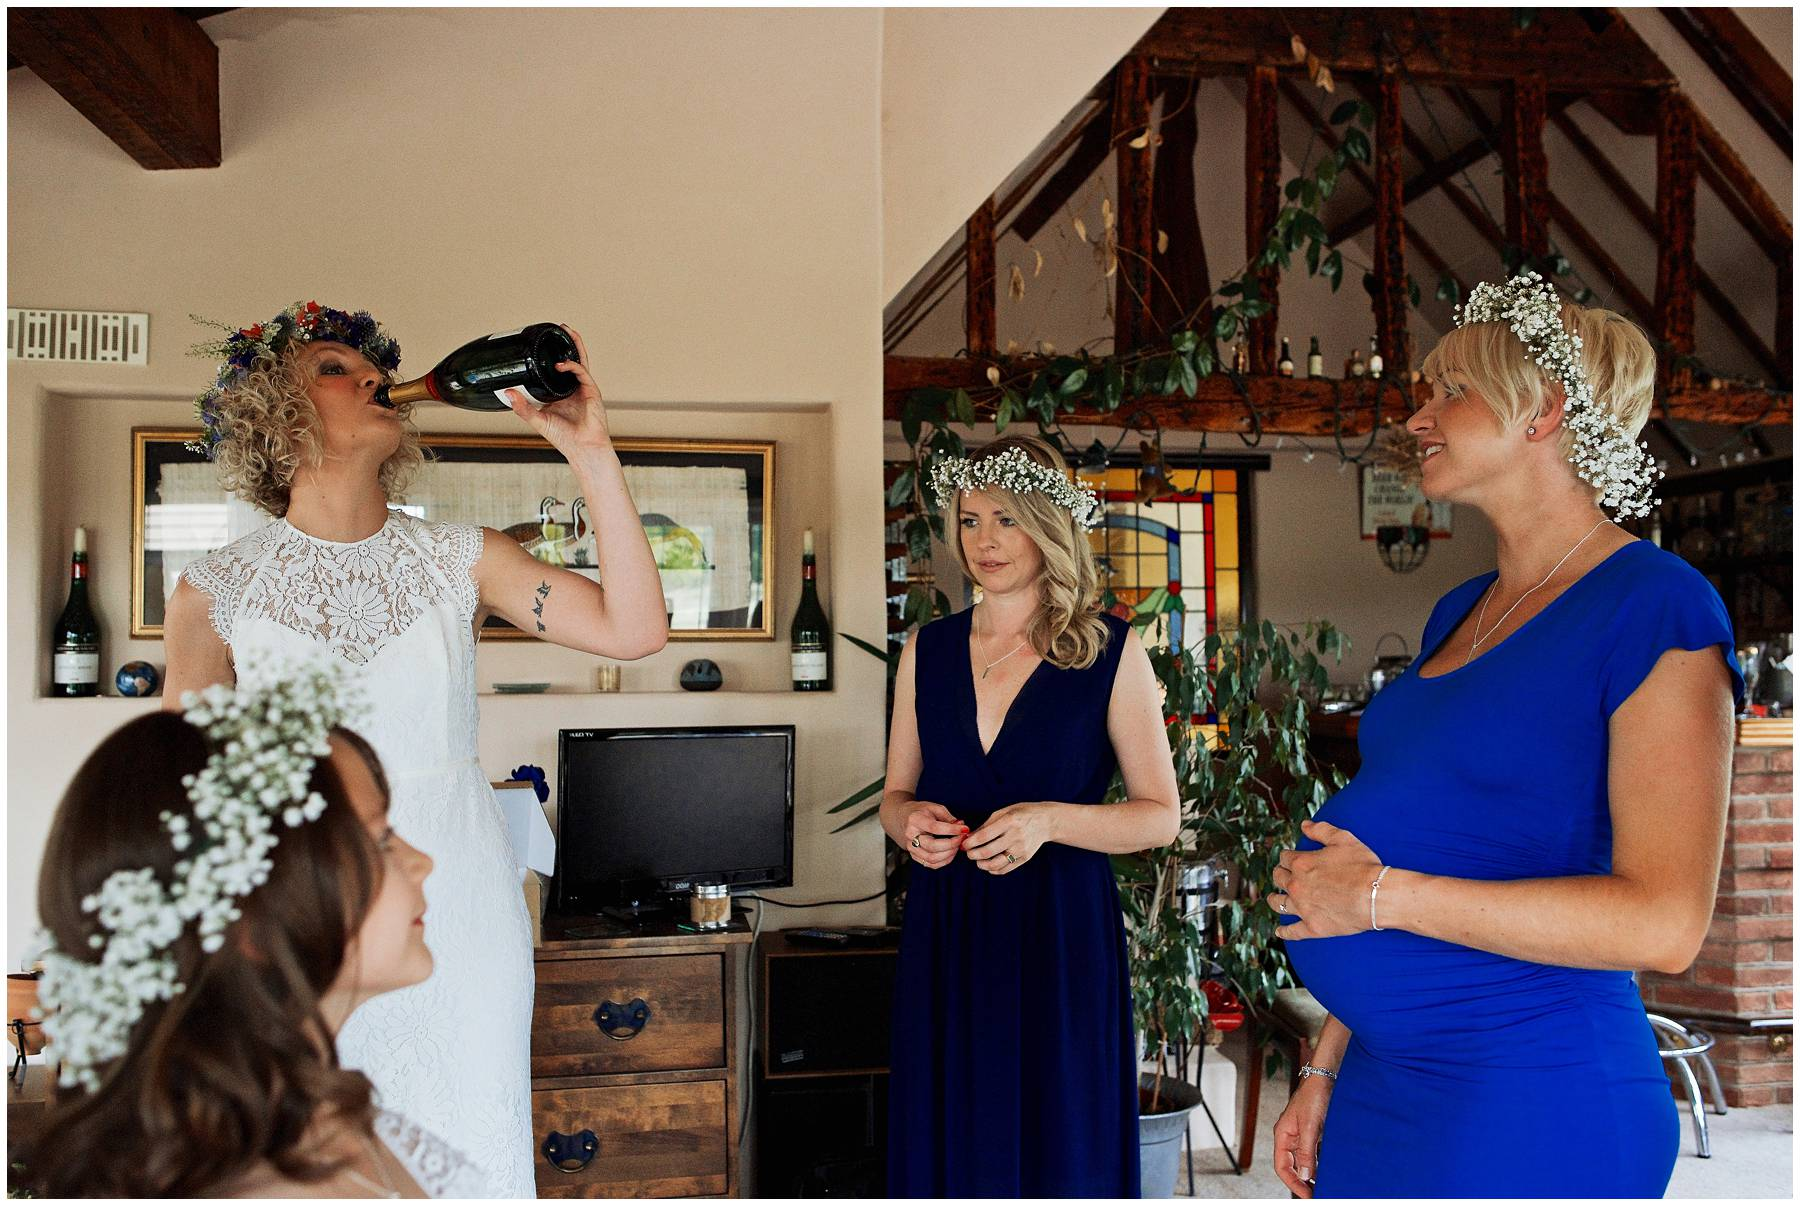 Festival bride drinking champagne from the bottle